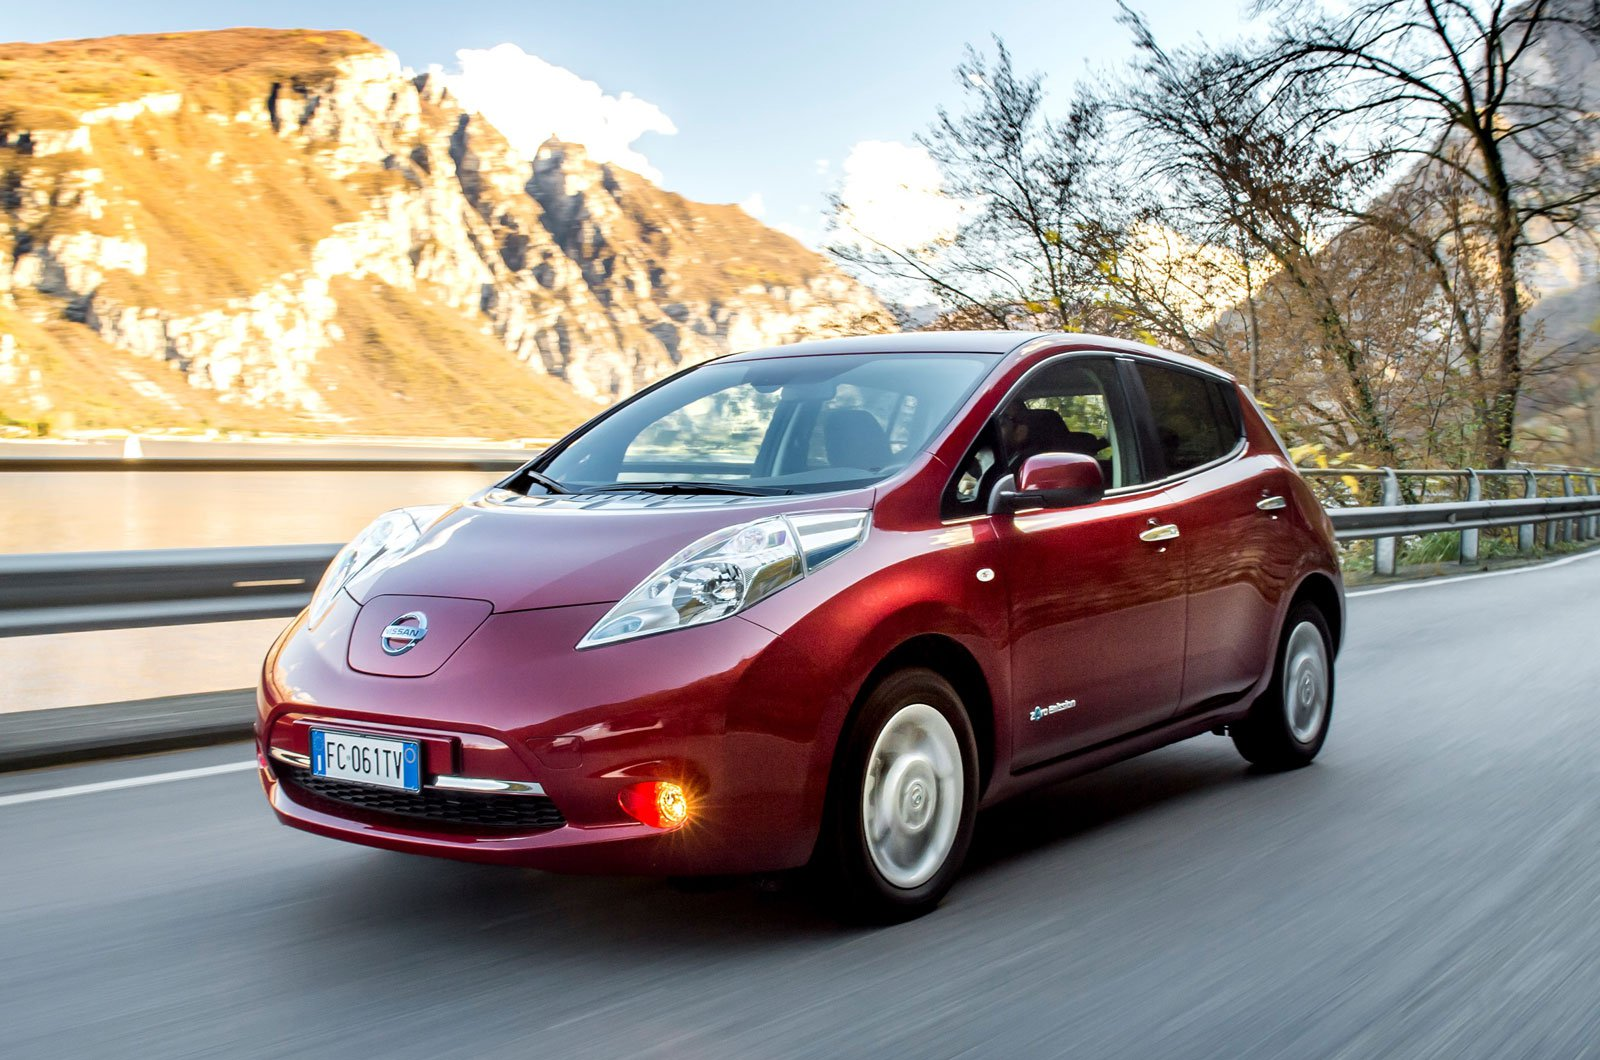 Electric Cars May Offer Running Costs But They Can Be Expensive To And Have Less Range Than With Conventional Engines